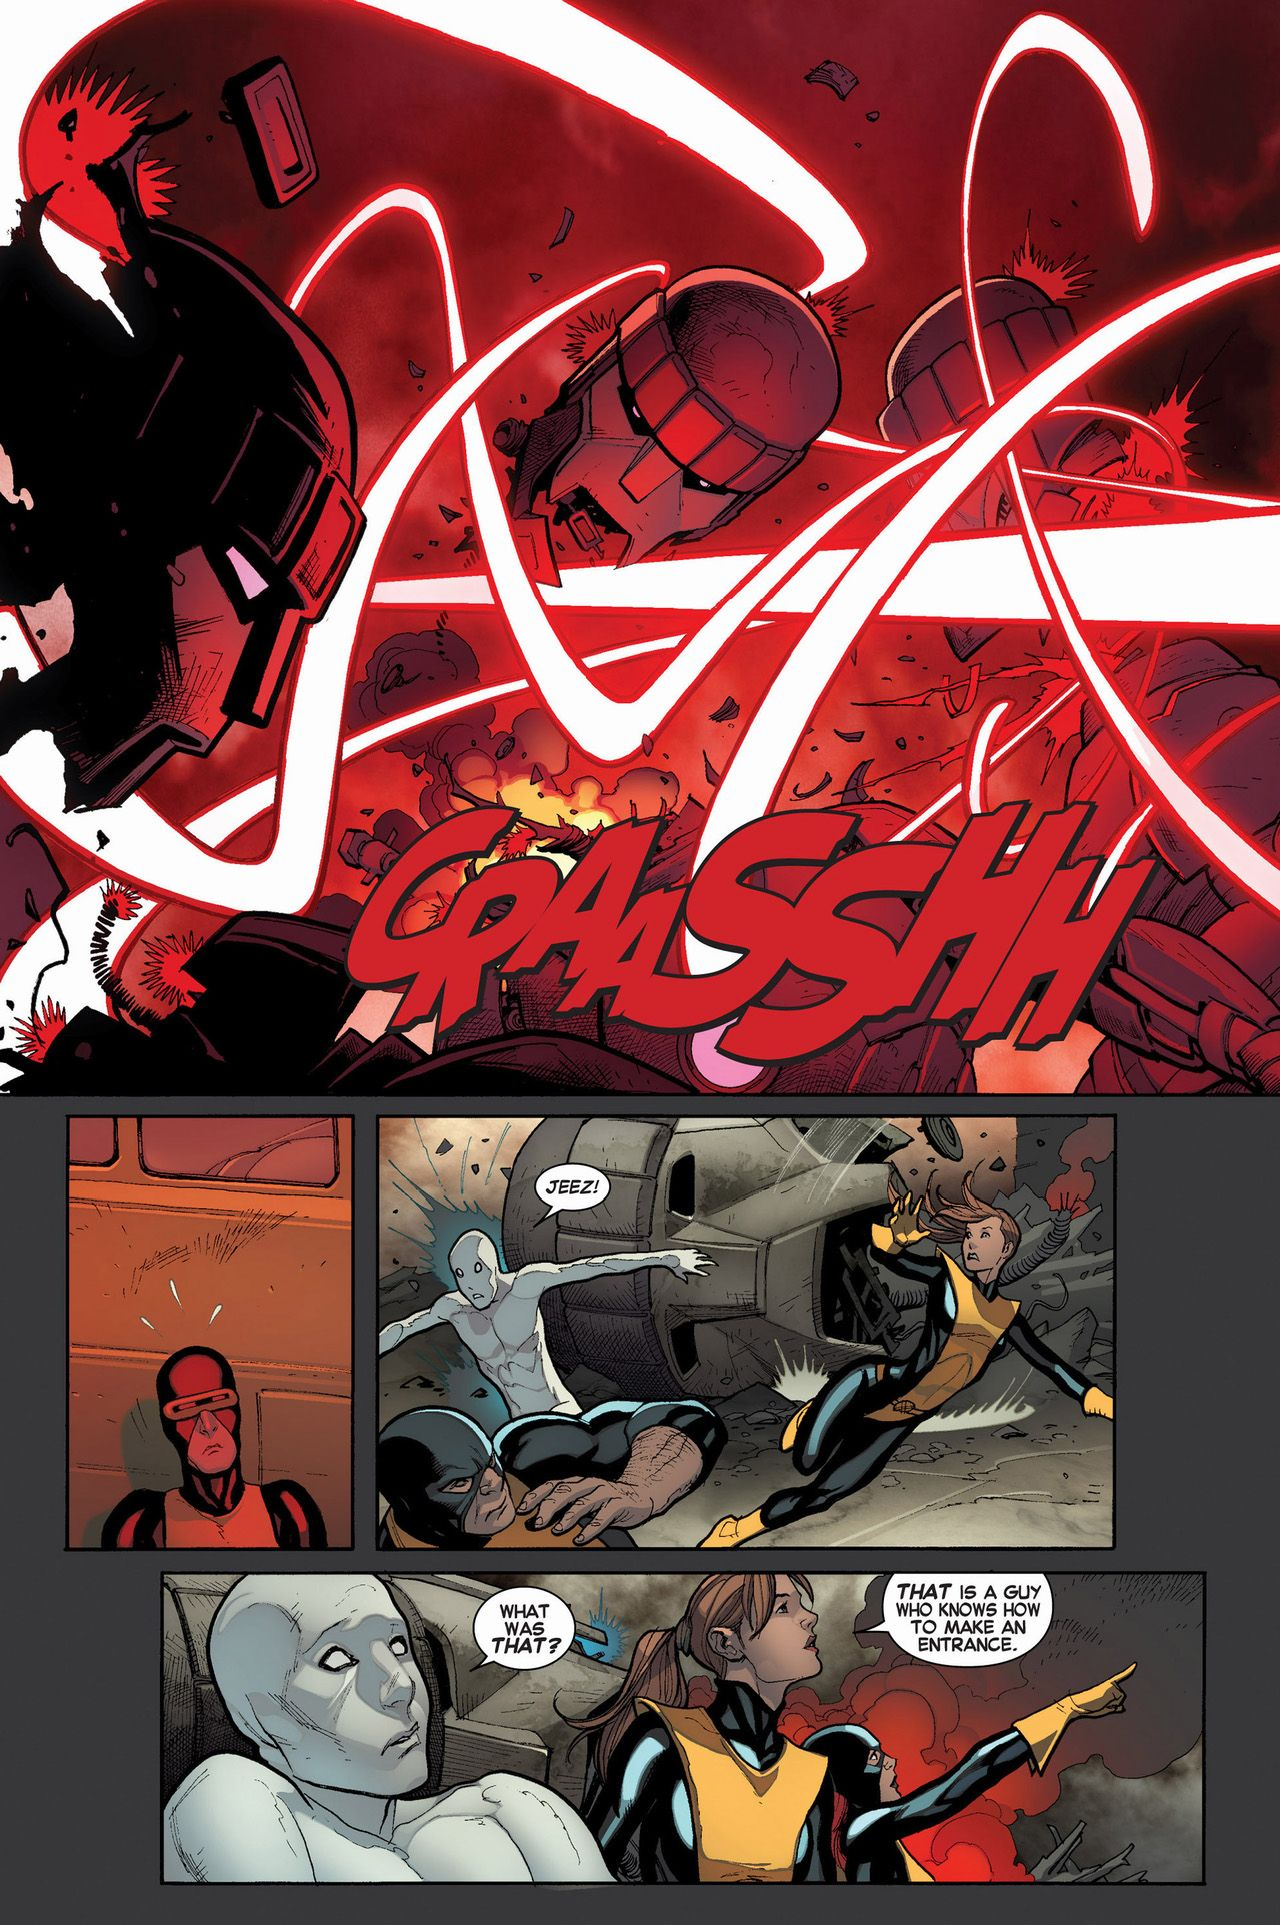 Cyclops Helps Out The Original 5 X Men Http Comicnewbies Com 2014 11 30 Uncanny X Men Helps Out The Original 5 X Men Cyclops X Men X Men Uncanny Avengers